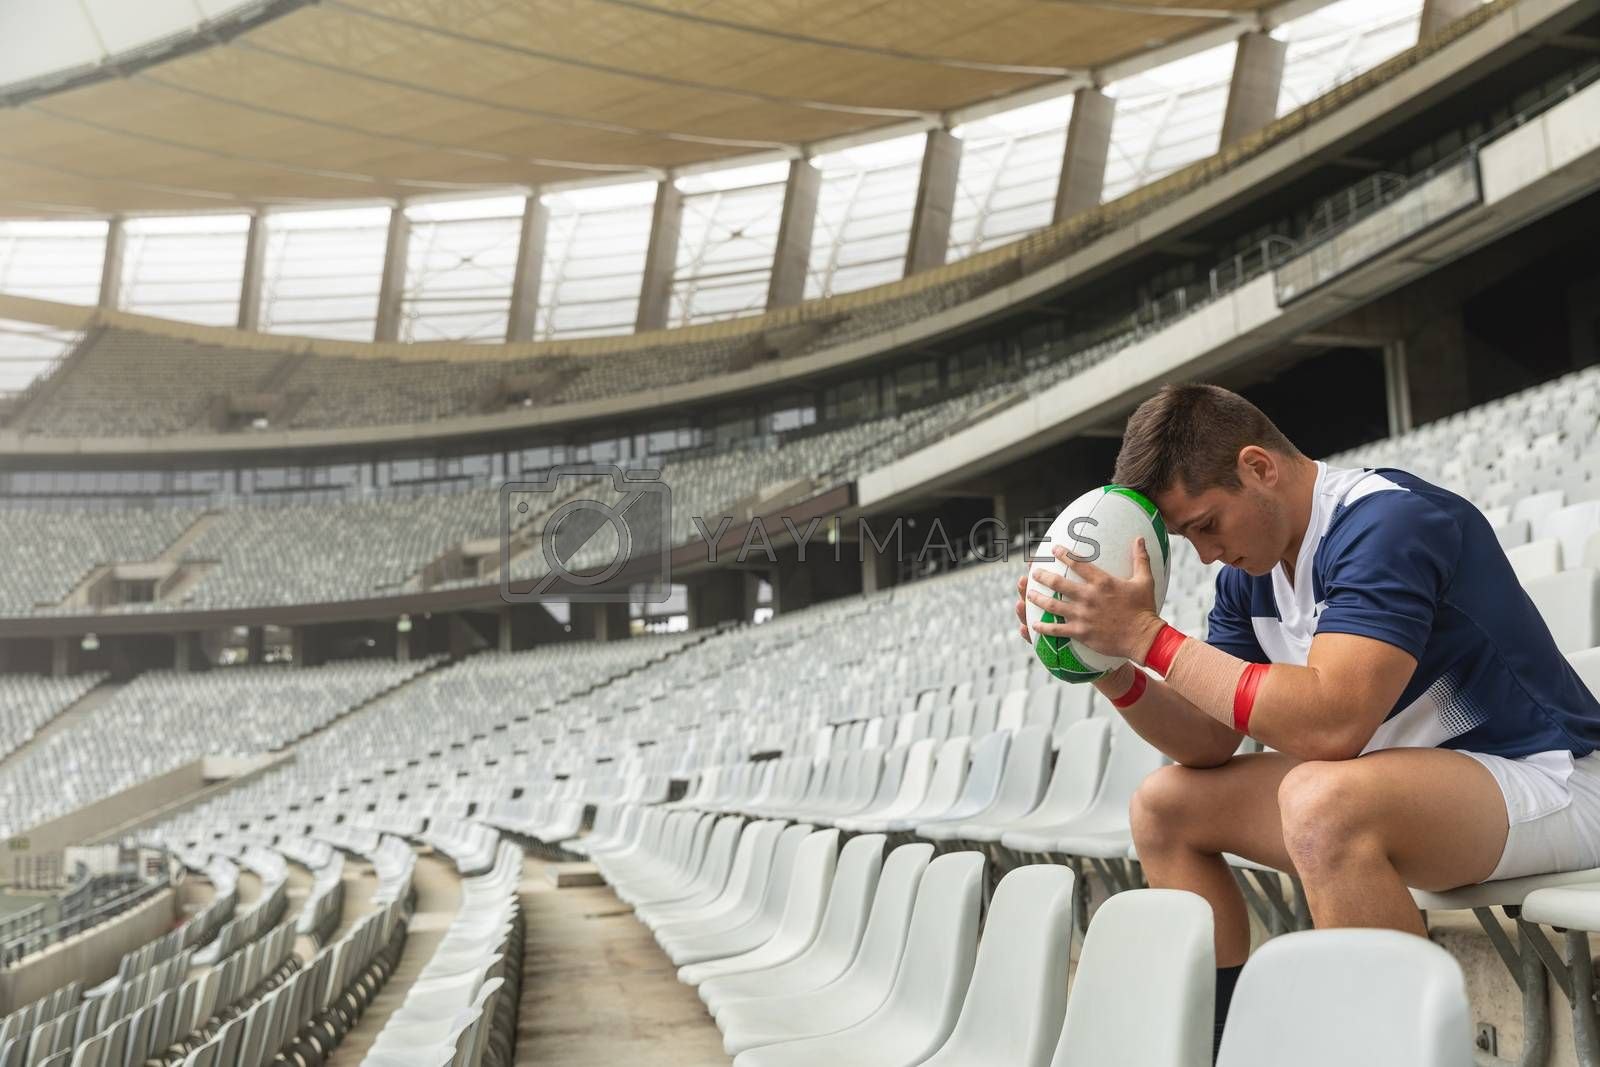 Upset Caucasian Male rugby player sitting with rugby ball in stadium by Wavebreakmedia